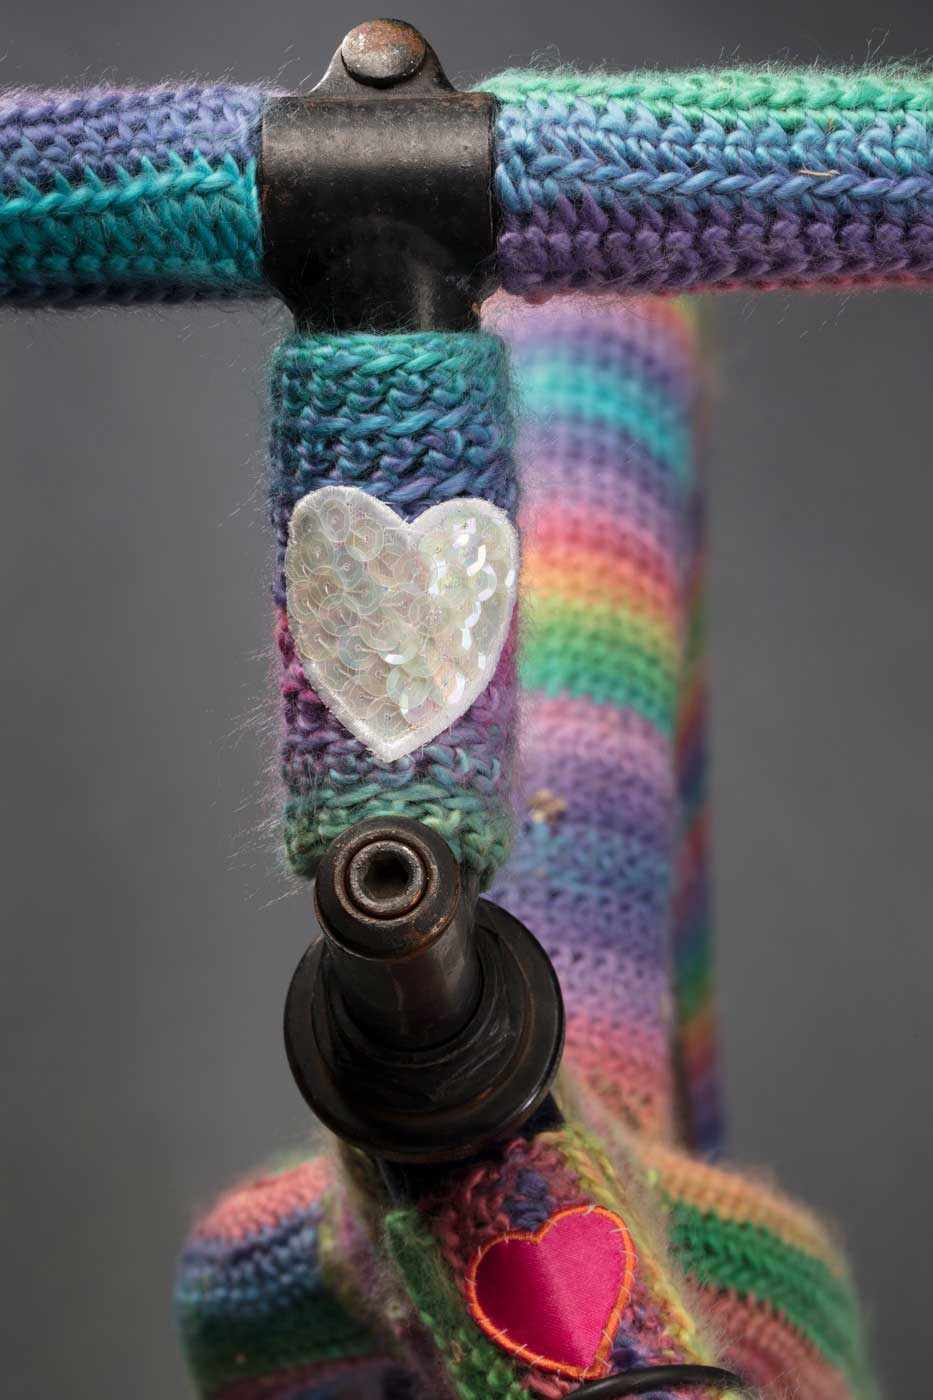 Bike handlebars covered in rainbow-coloured wool - click to view larger image